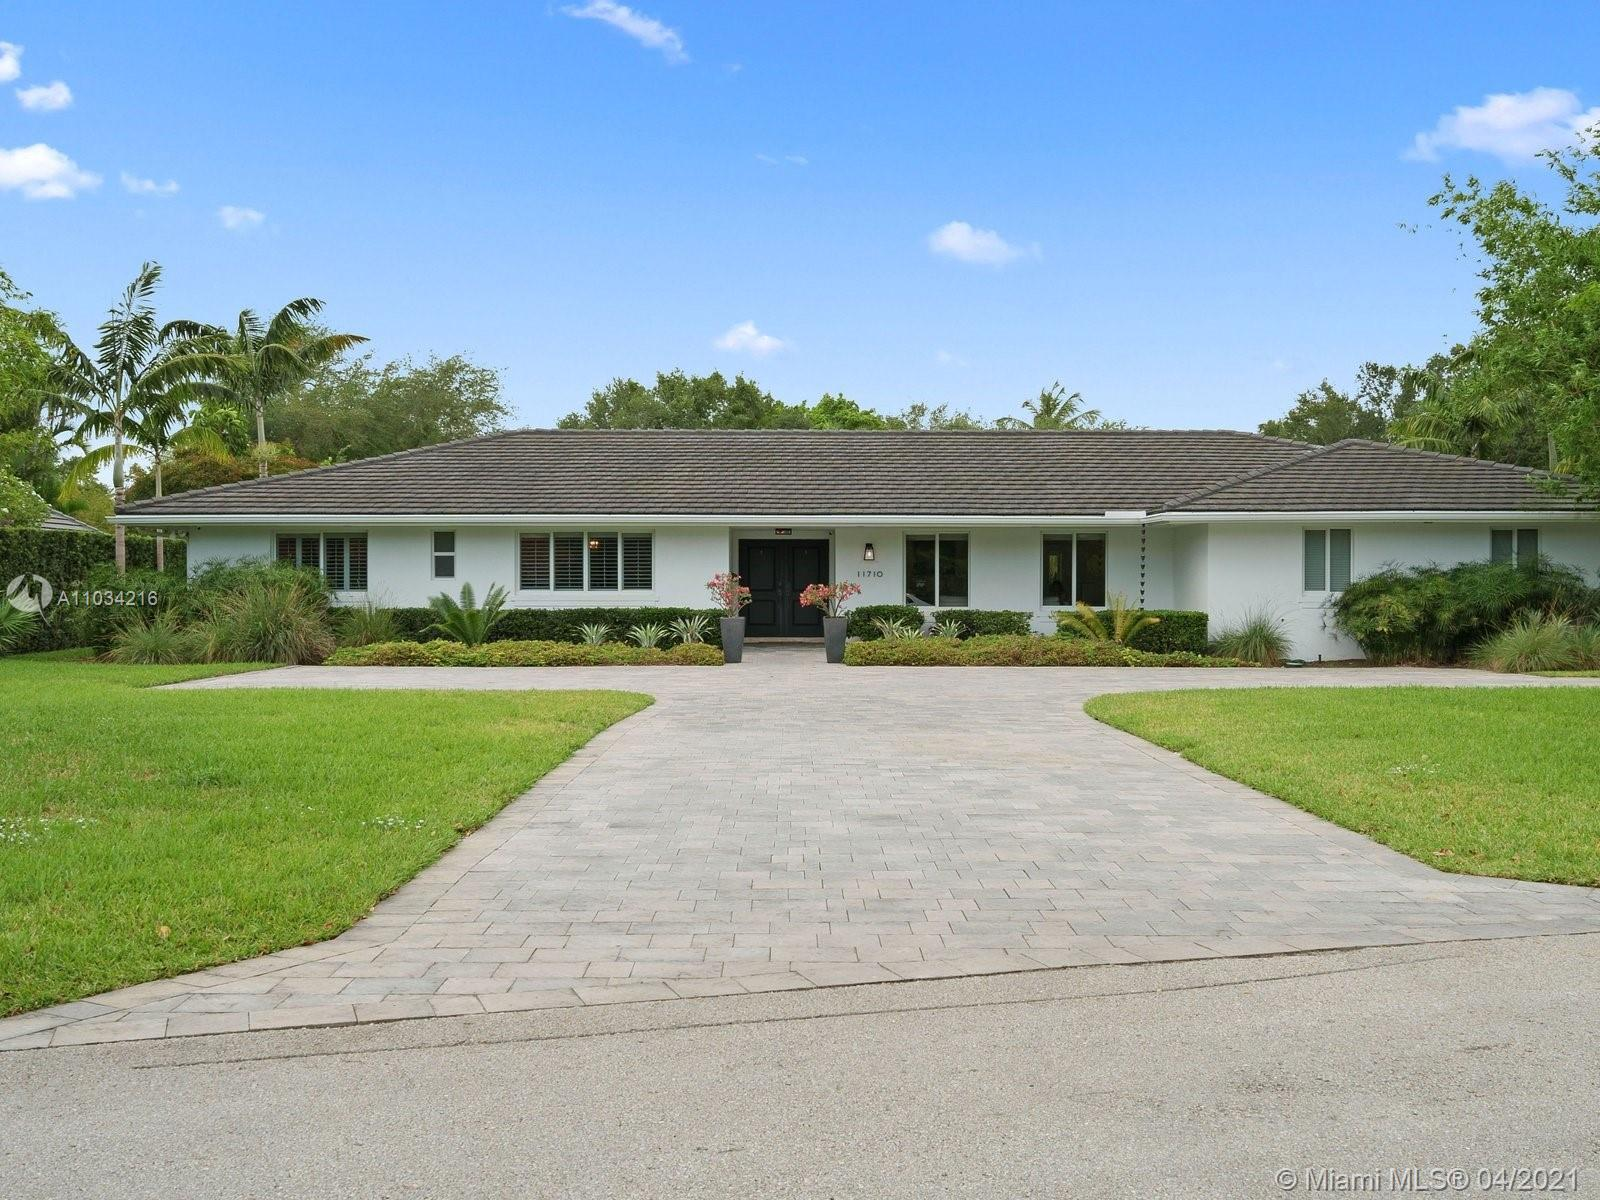 Stunning 5 bedroom, 4 bathroom Pinecrest estate home. 4,081 SF of under-air living space and 6,008 t